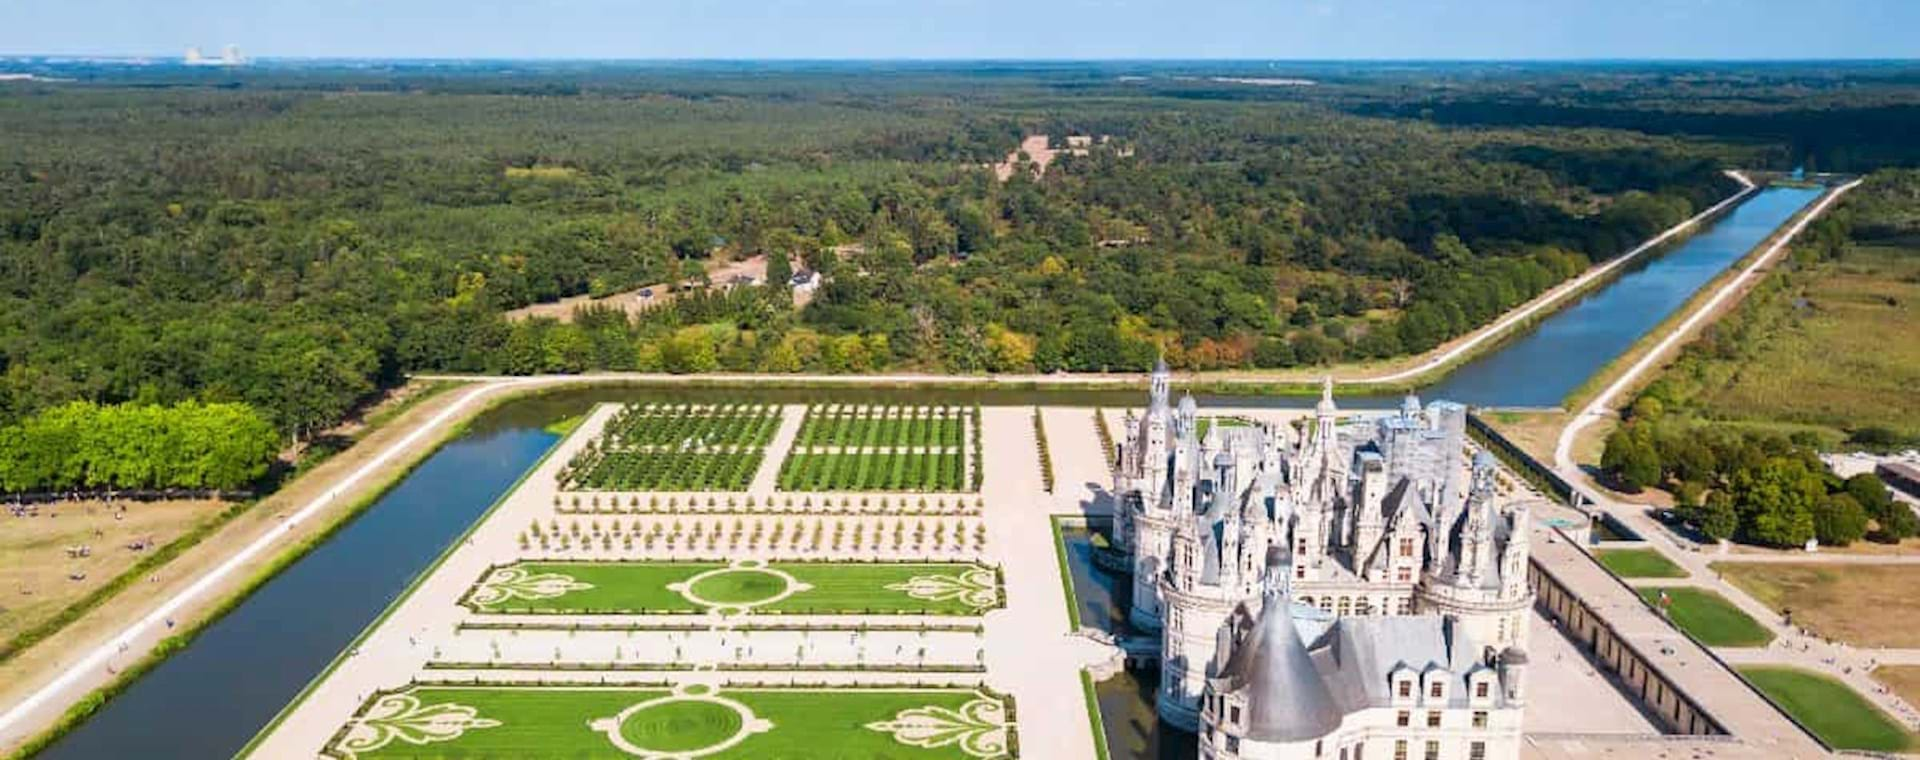 Areal view of the Chambord Castle